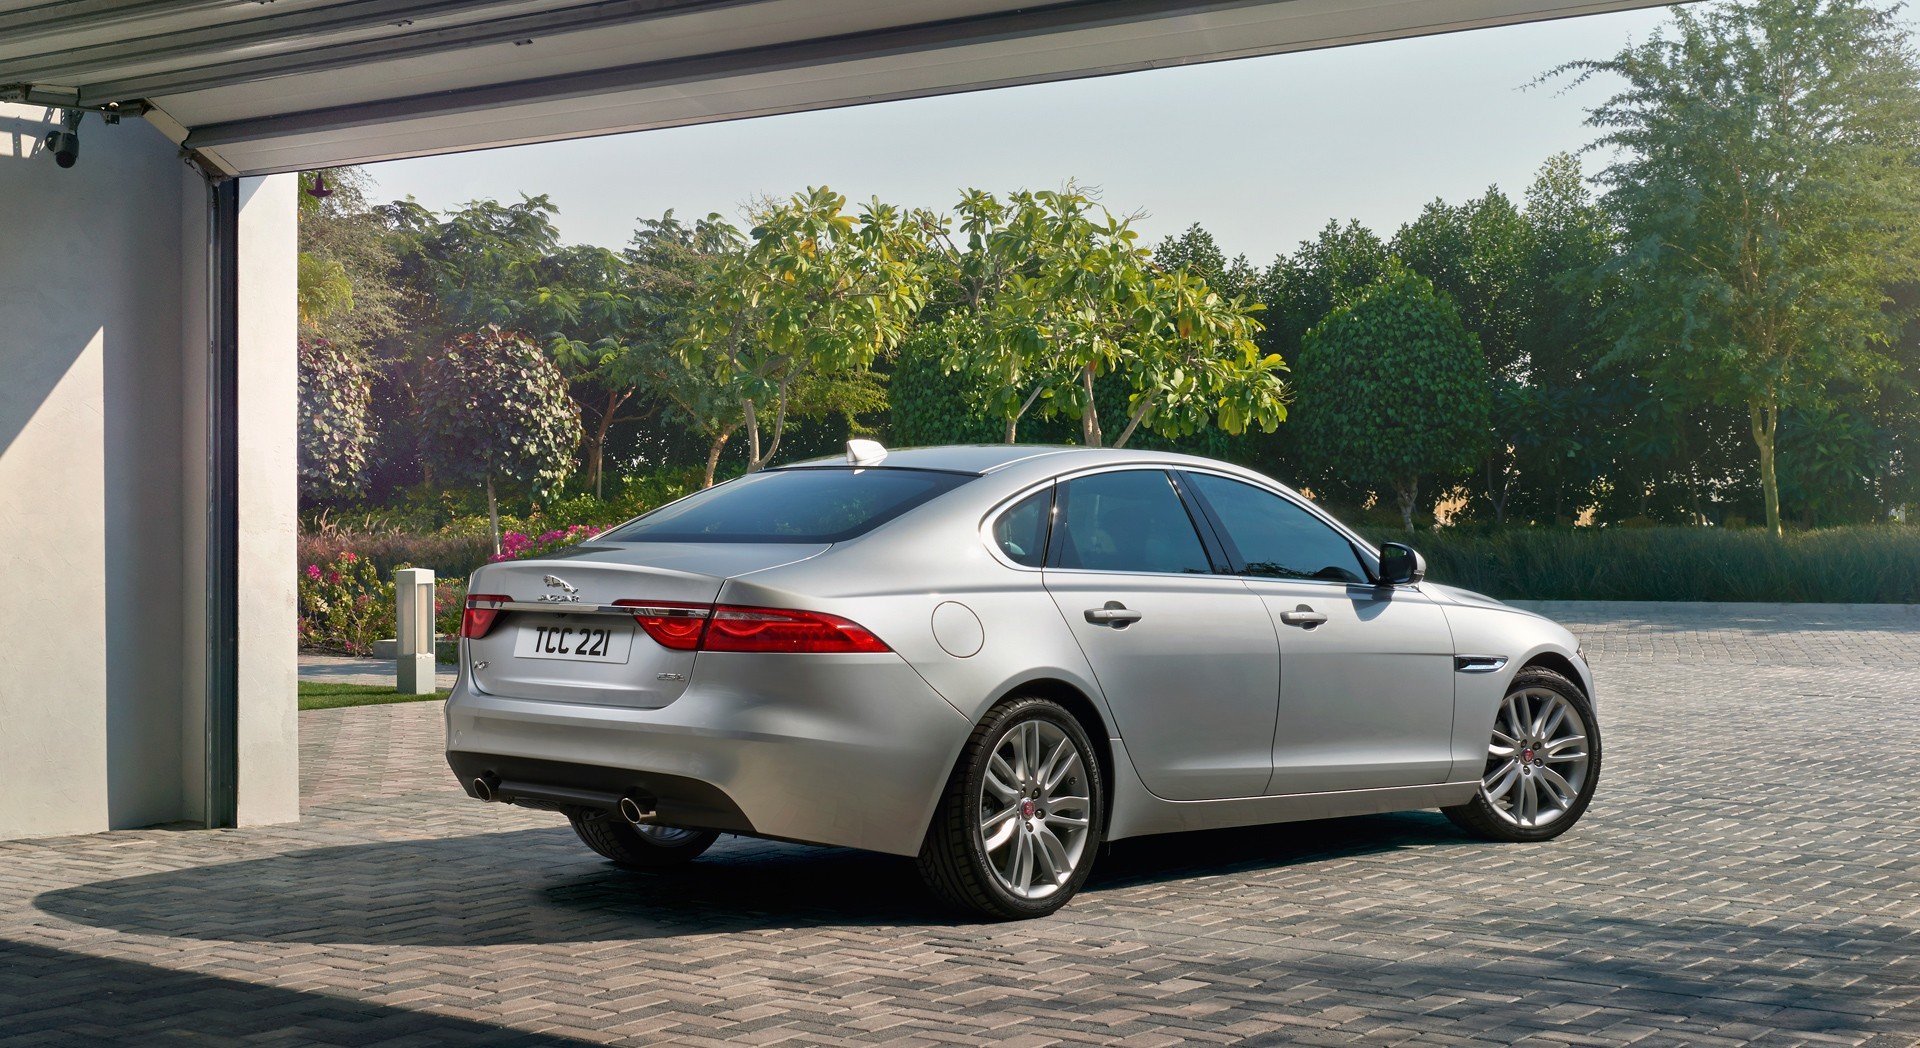 Jaguar Nice : jaguar xf nice hd desktop wallpapers 4k hd ~ Gottalentnigeria.com Avis de Voitures